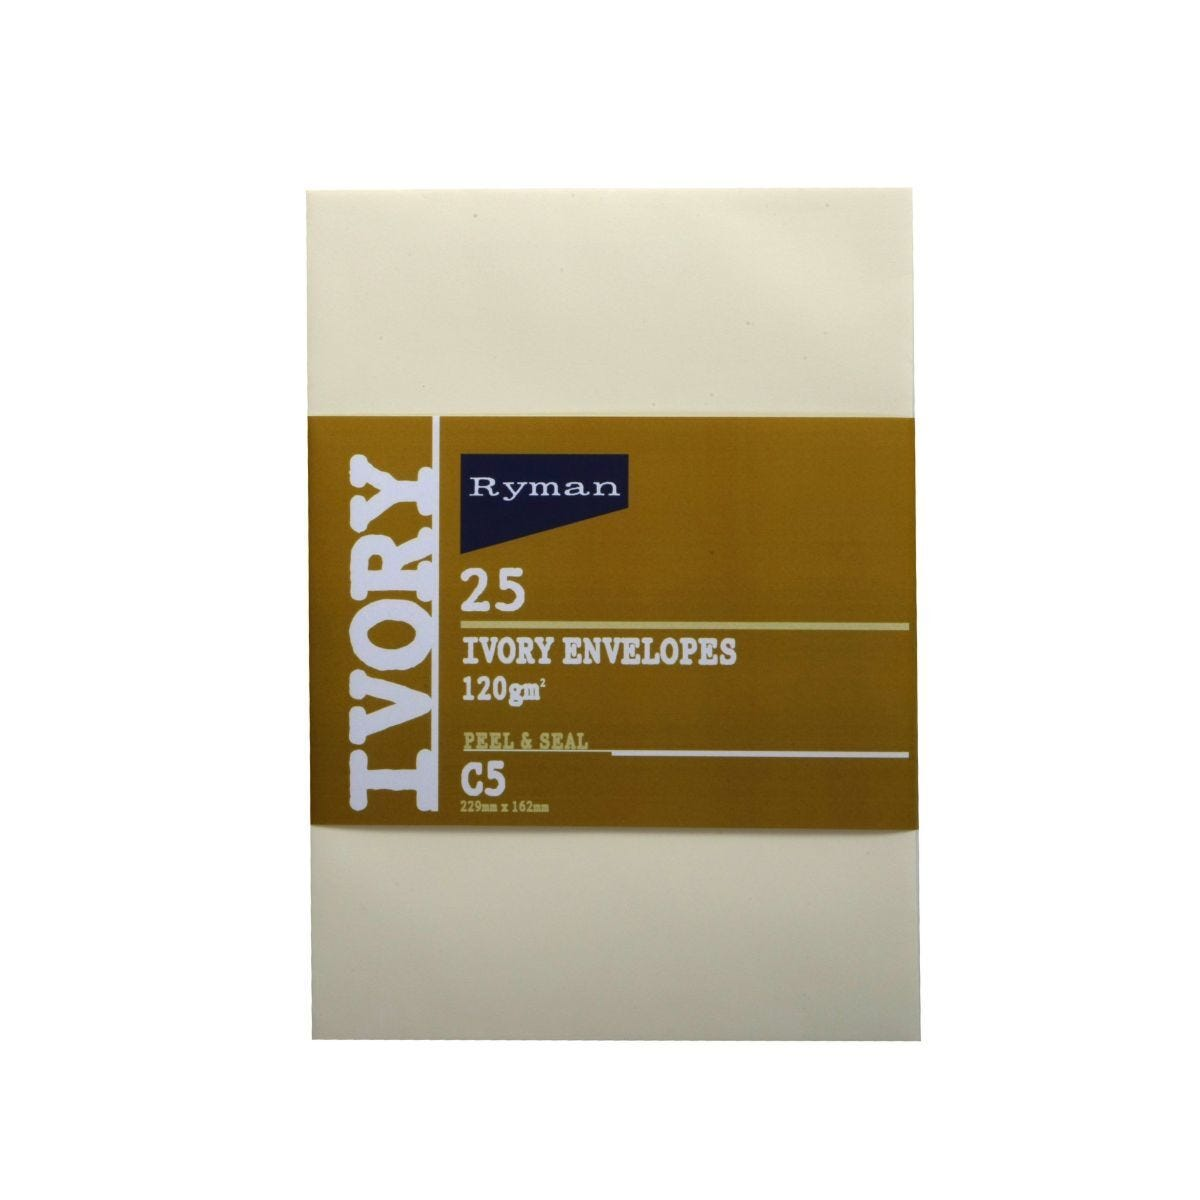 Ryman Card Envelopes C5 120gsm Peel and Seal Pack of 25 Ivory